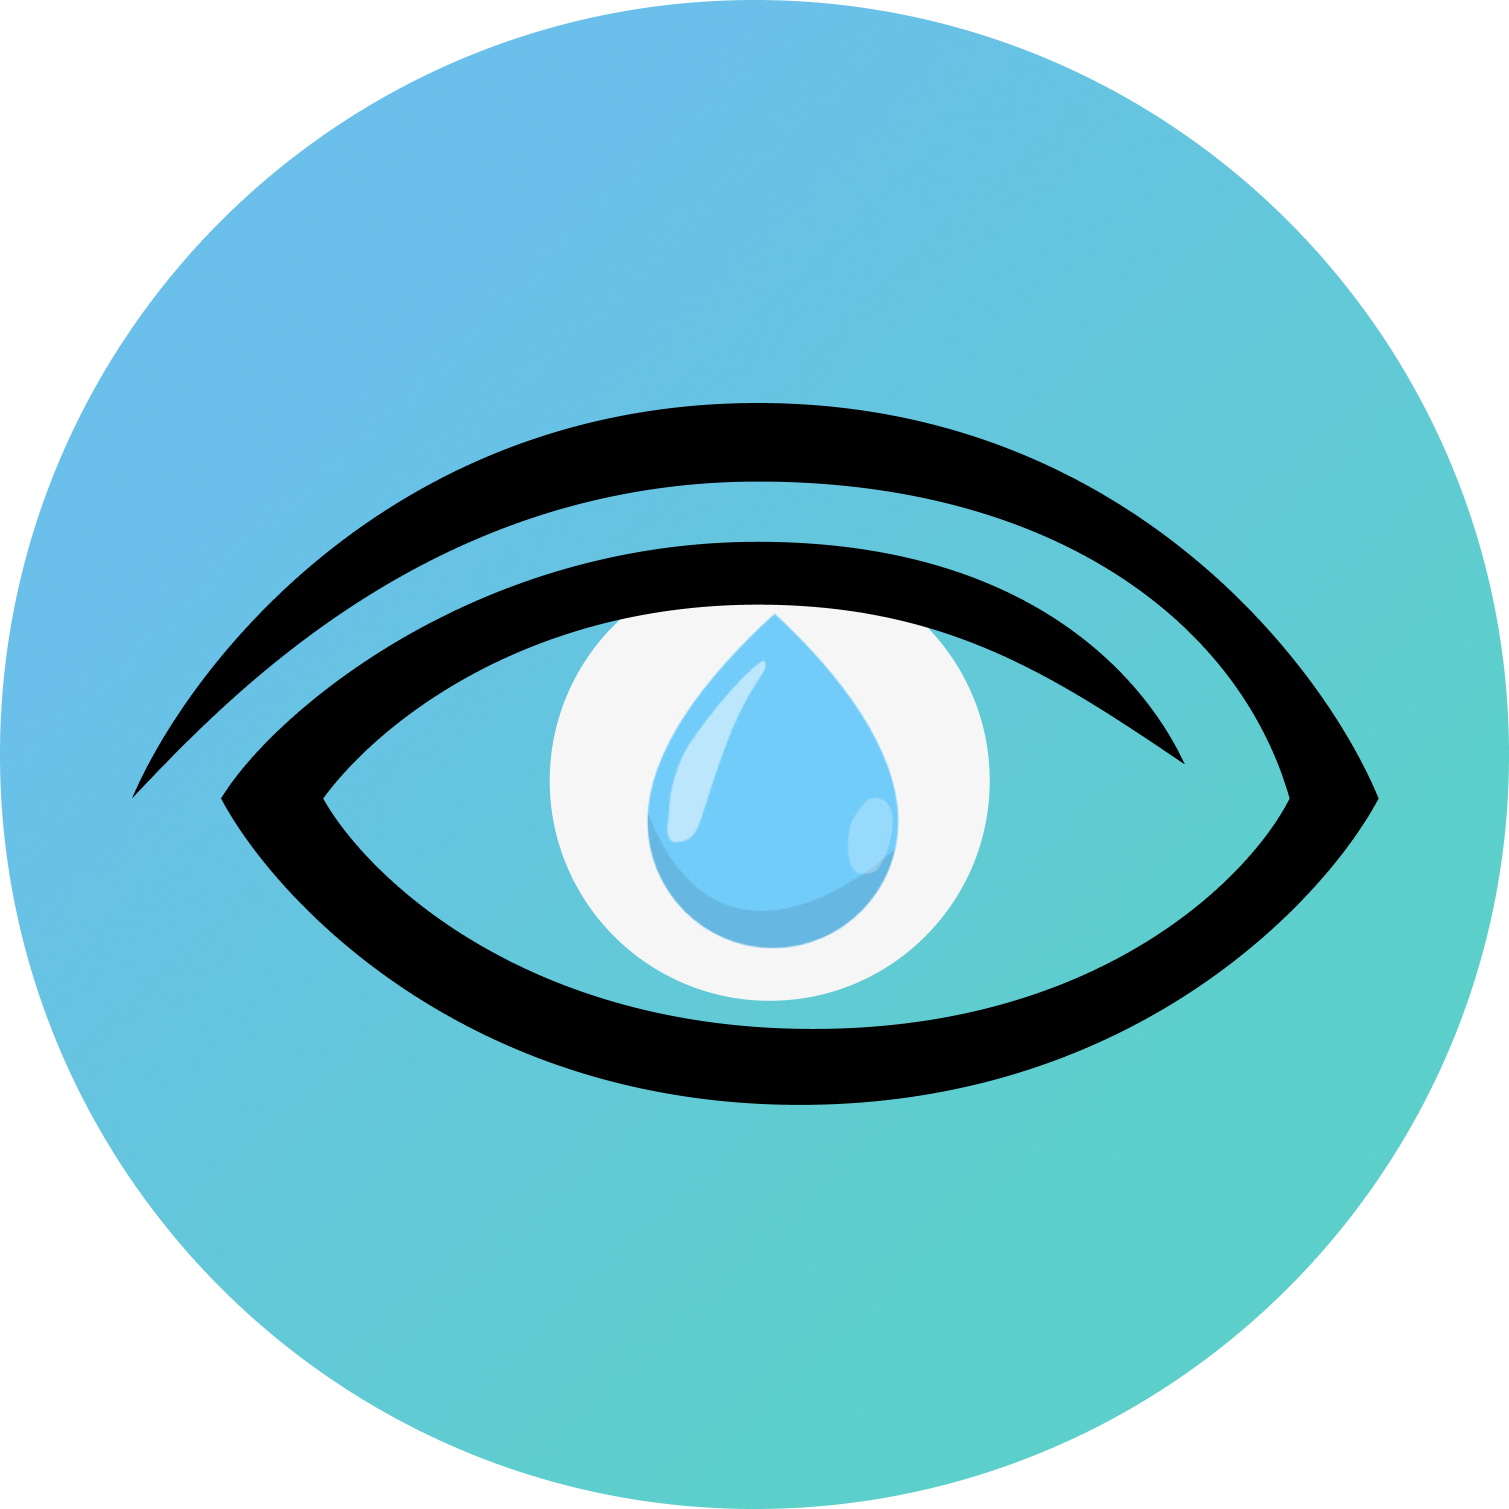 Raindrops logo featuring a drop of rain in the centre of the eye